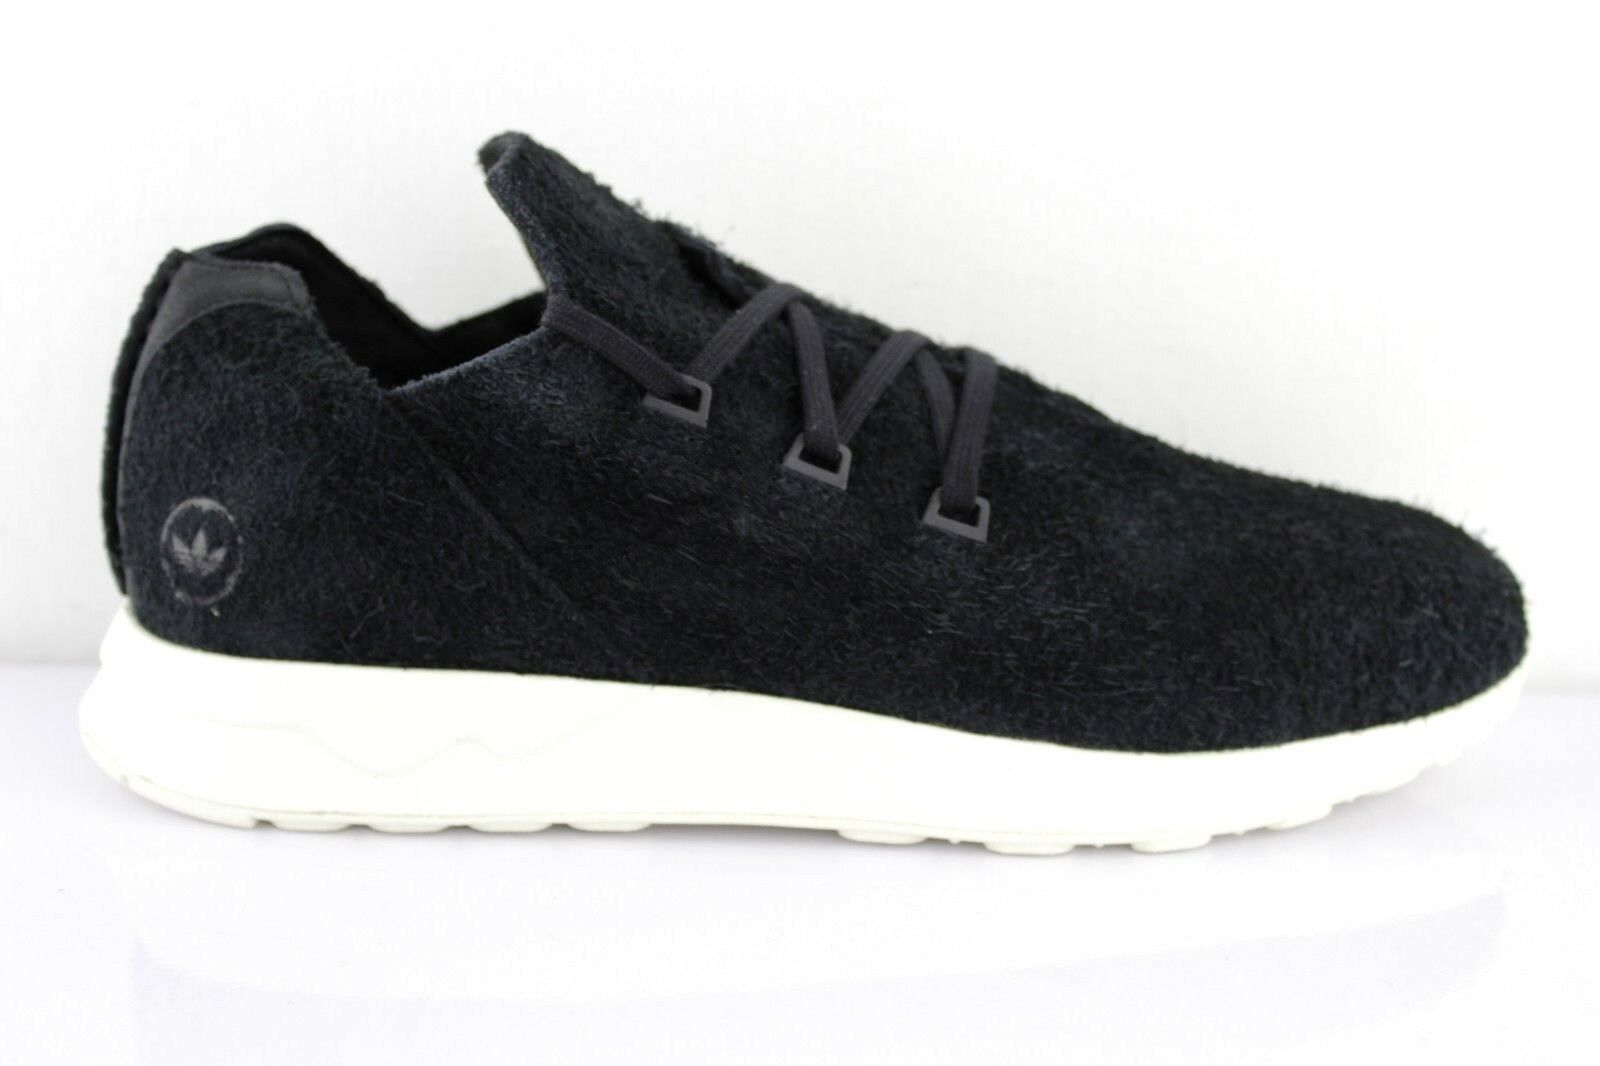 Adidas ZX Flux bb3751 Wings and Horns Originals baskets Chaussures chaussures Taille Au Choix